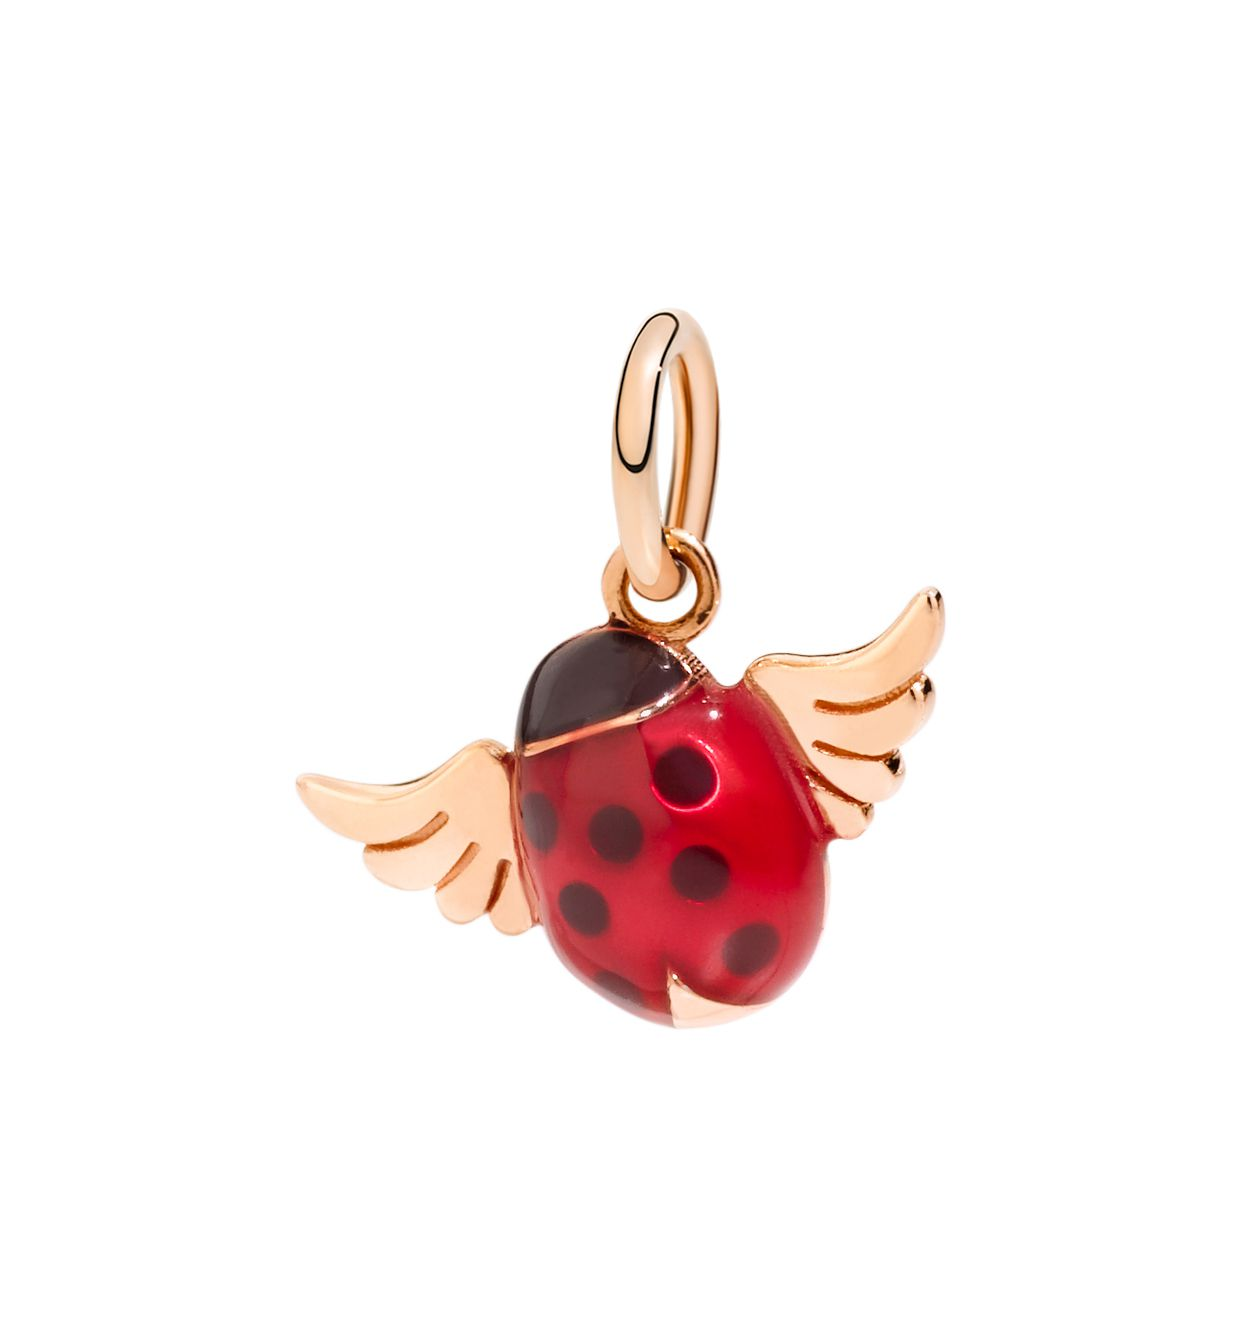 DoDo Ladybug with Wings Charm in 9k Rose Gold with Red Enamel - Orsini Jewellers NZ